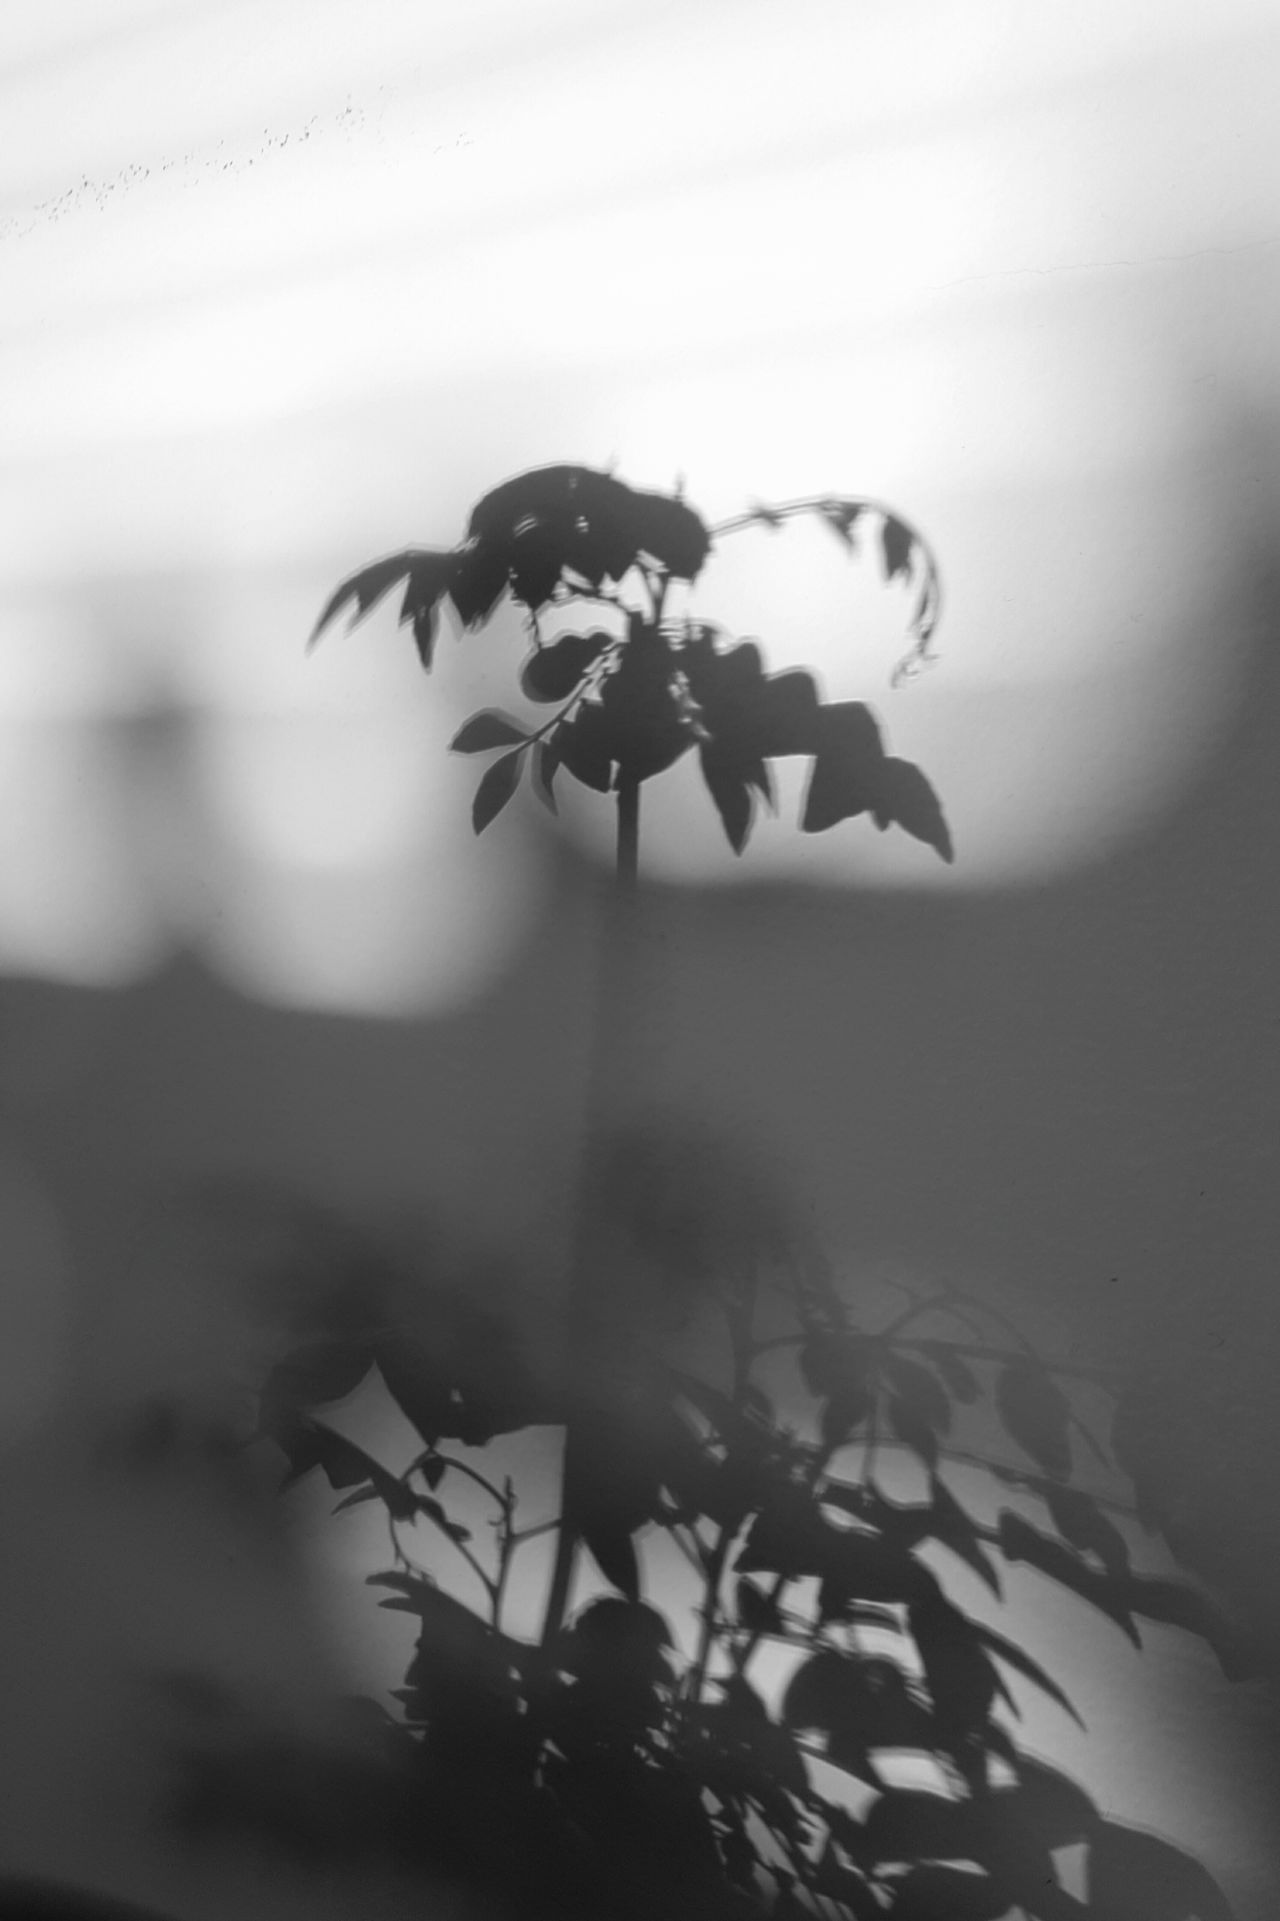 Reflection Silhouette Sunlight Curry Plant House Plant Sunlight Shadow Leaves Abstract Plant Evening Light Soft Light Slow Living Black And White